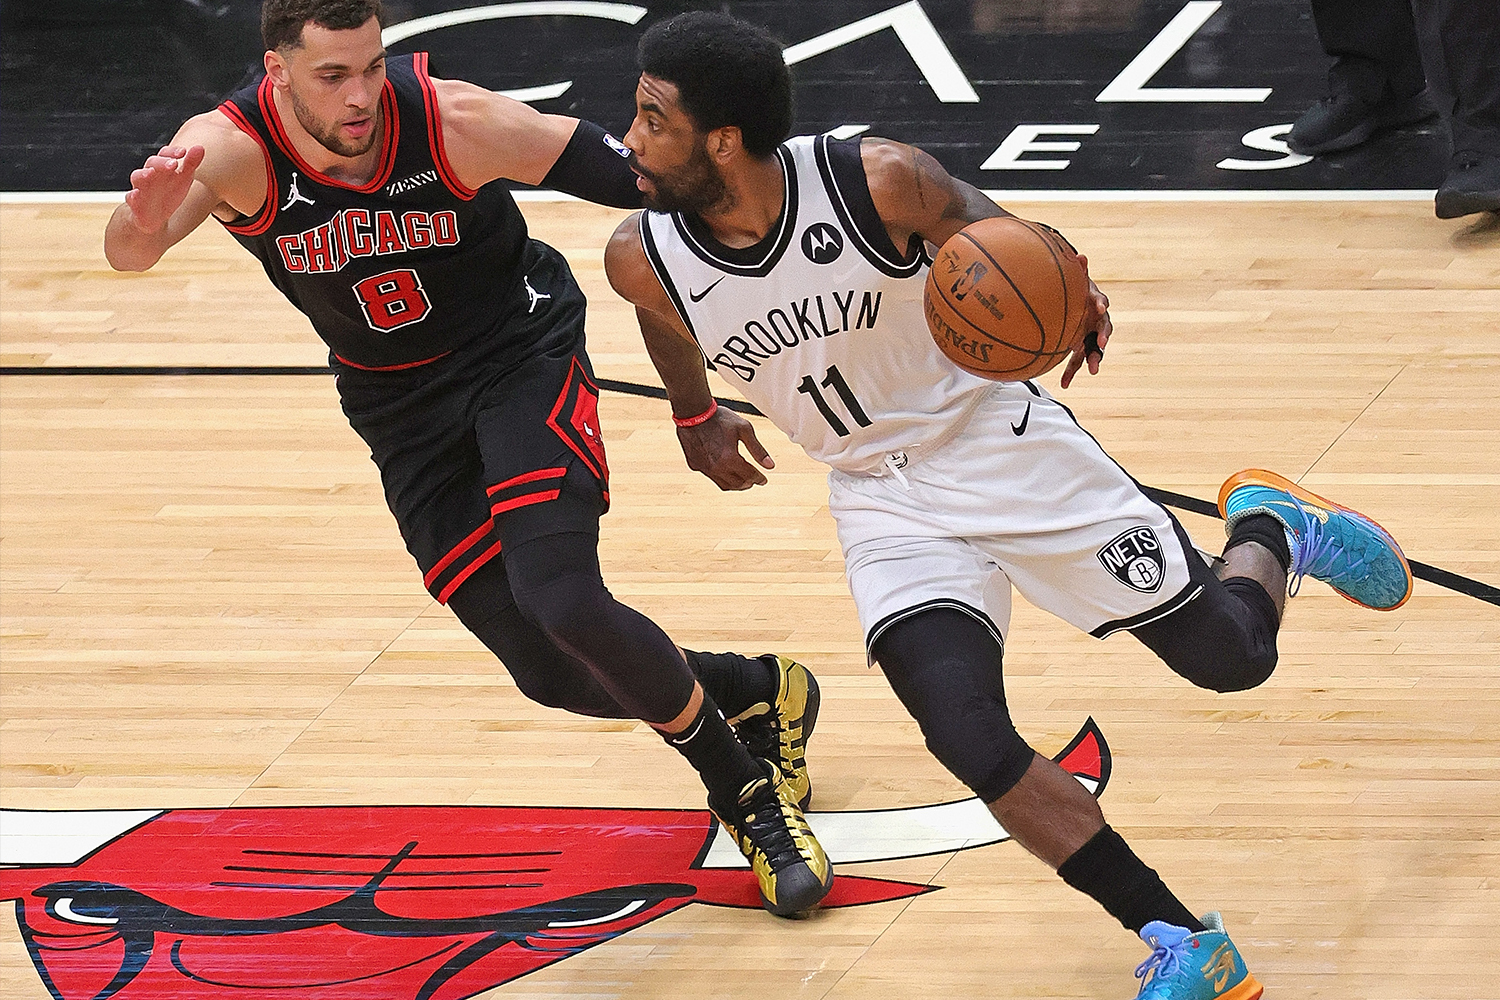 Kyrie Irving #11 of the Brooklyn Nets drives against Zach LaVine #8 of the Chicago Bulls